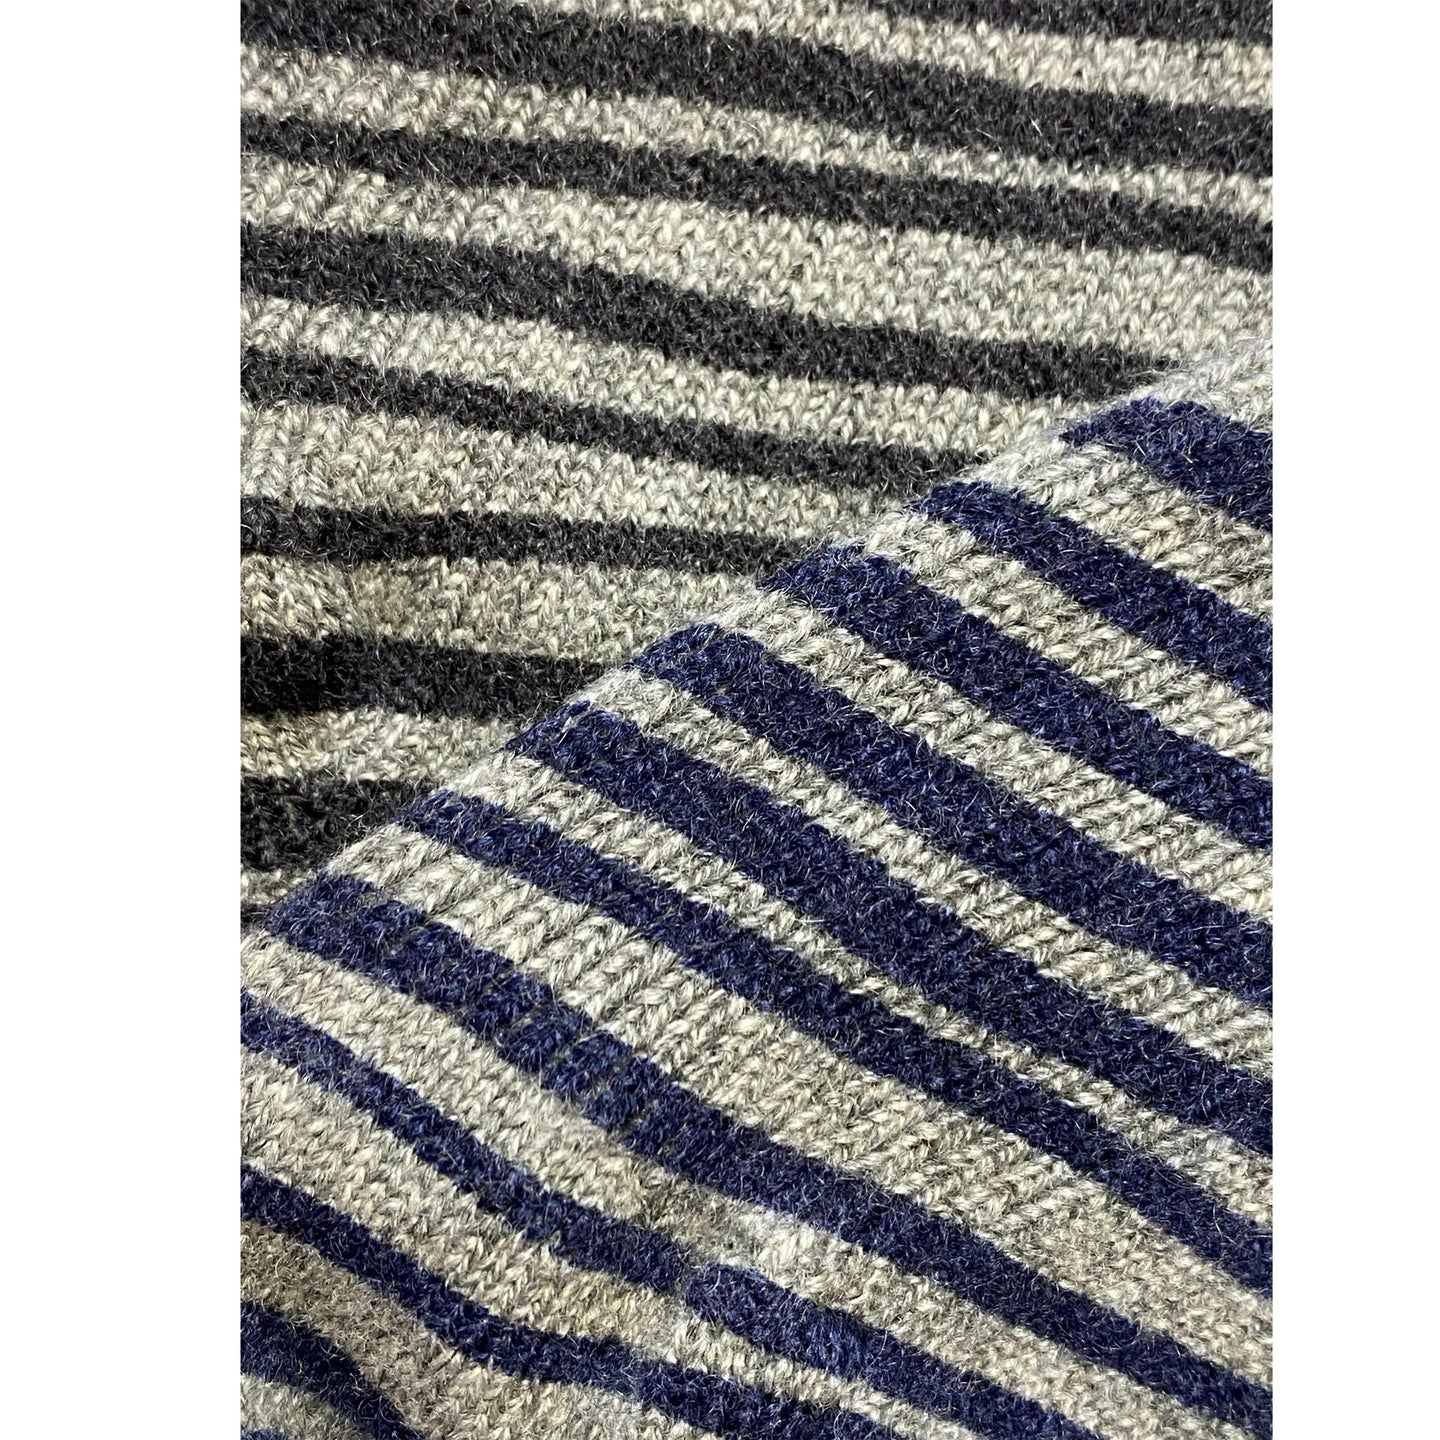 Double sided Striped ladies cashmere socks.